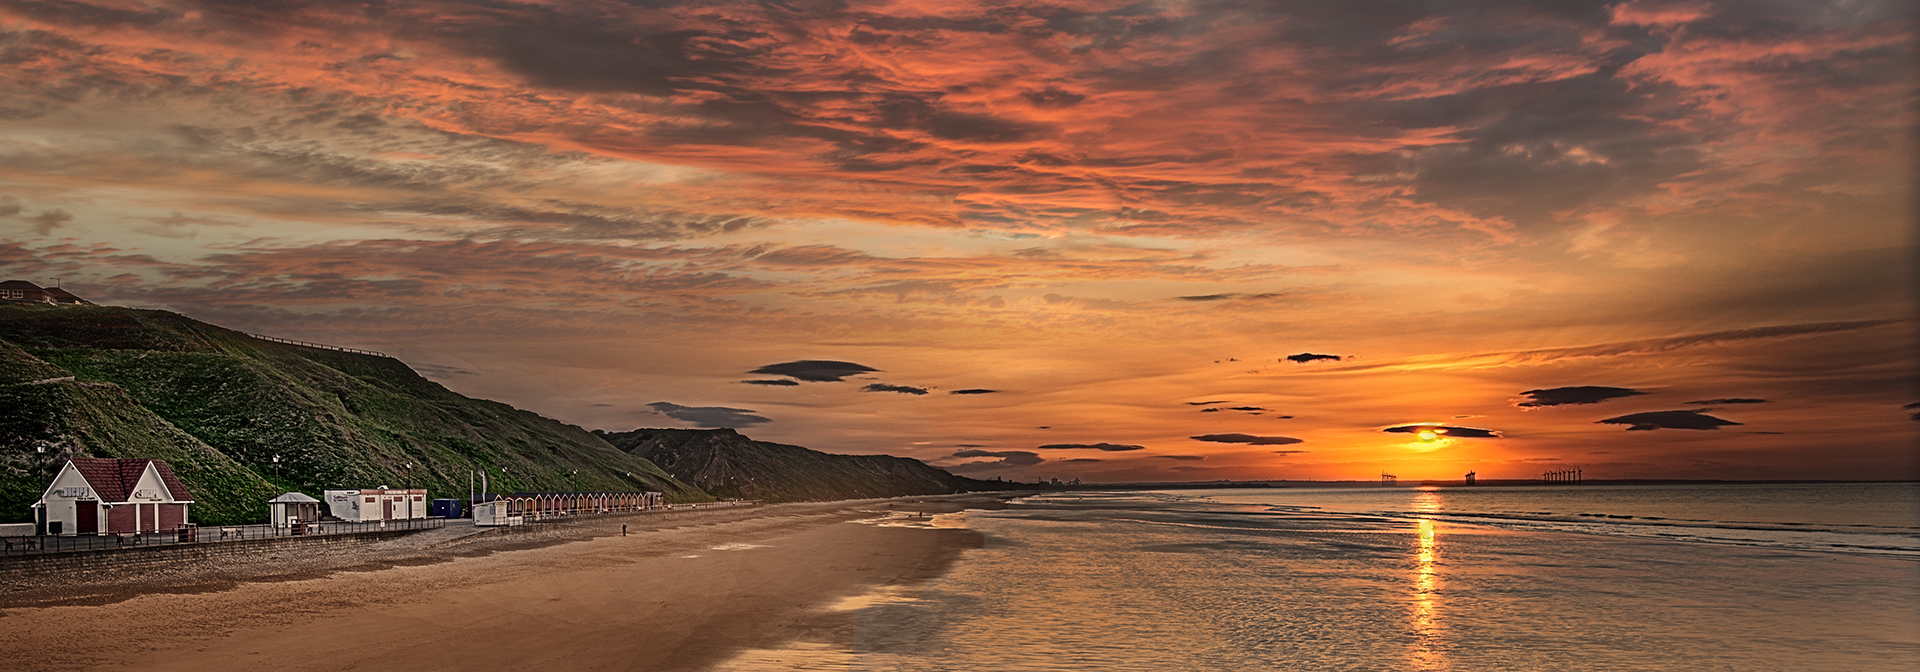 Sunset at Saltburn